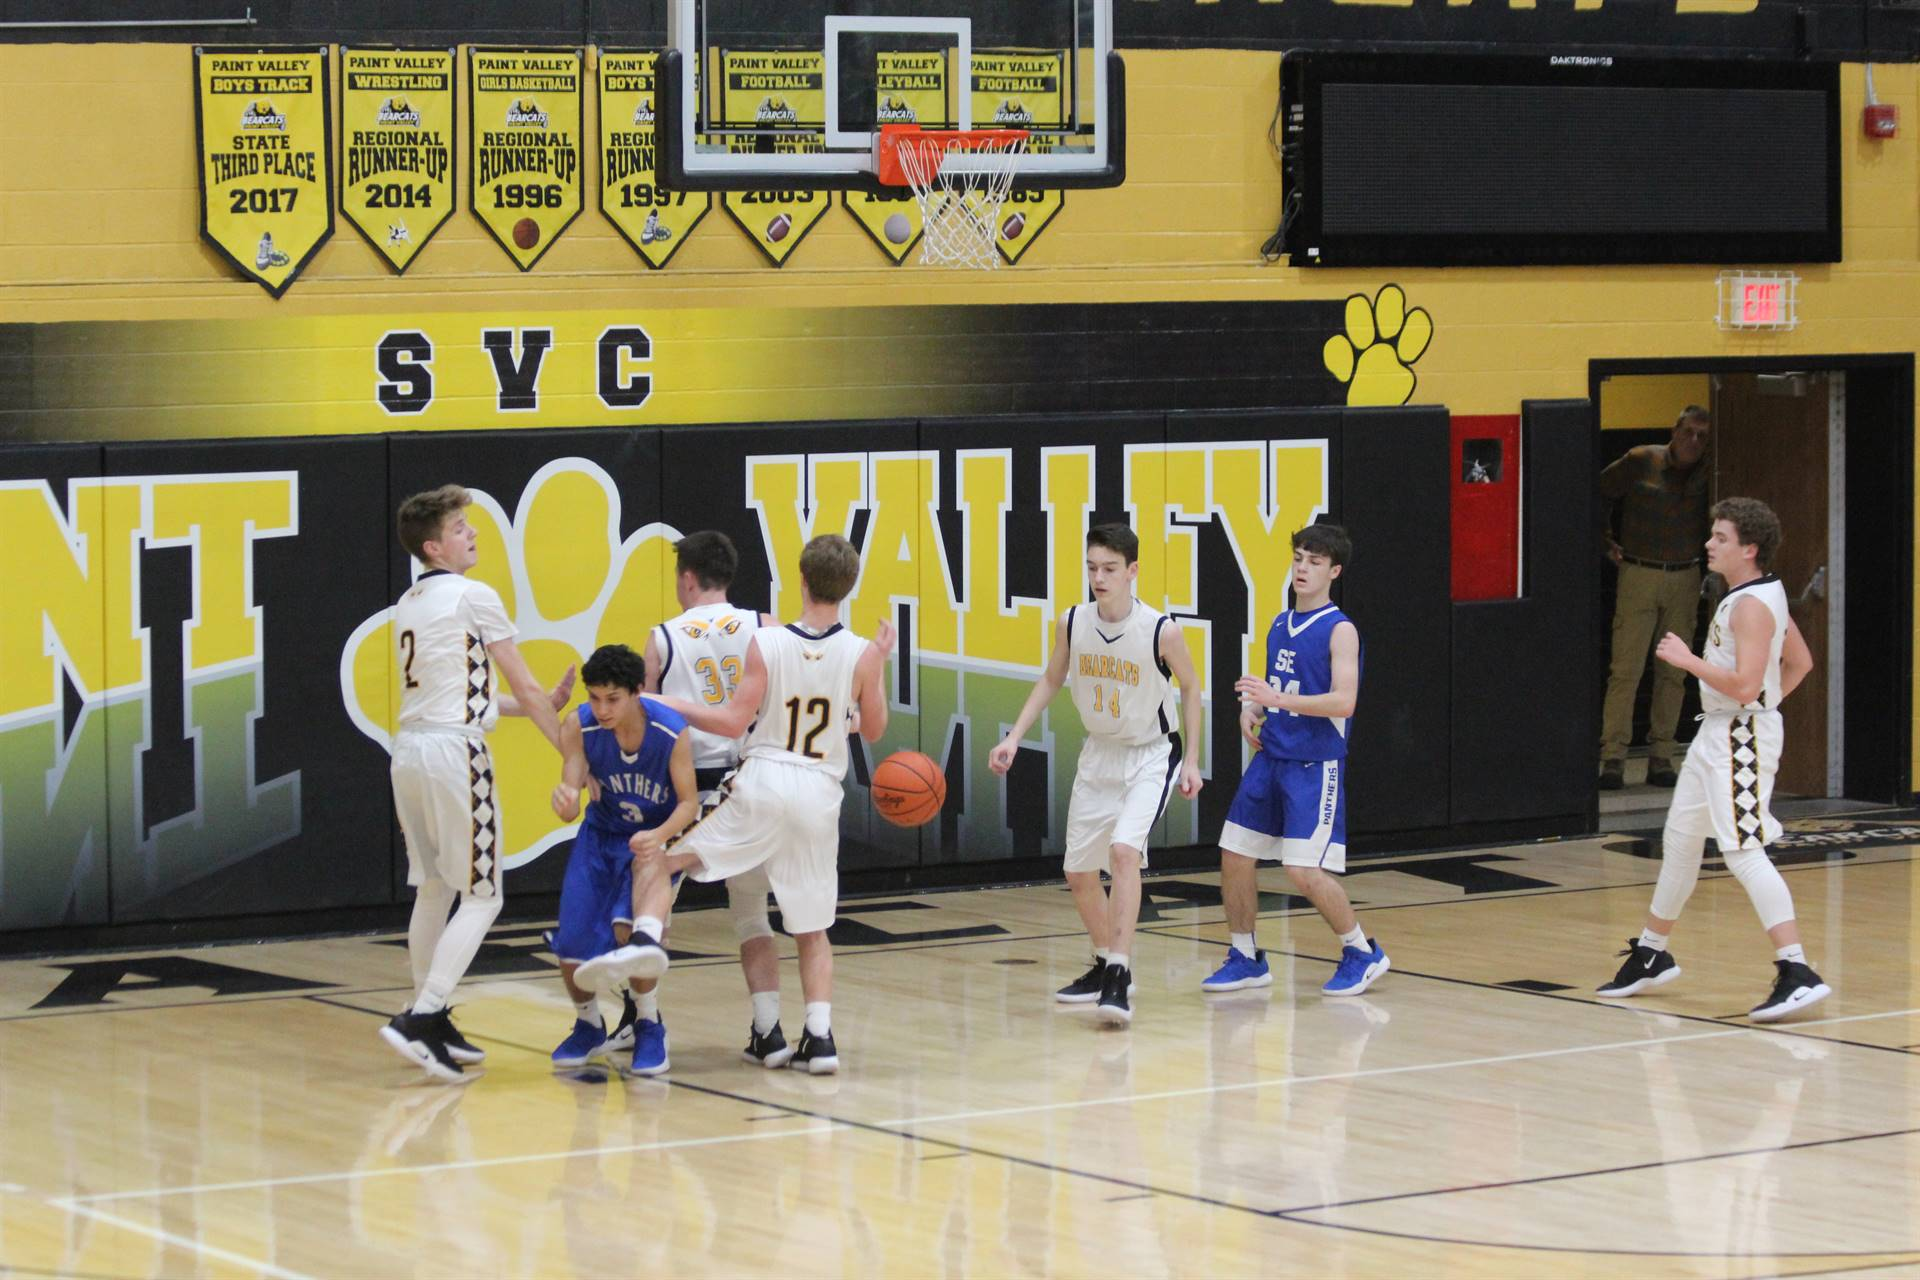 SE Boys vs Paint Valley